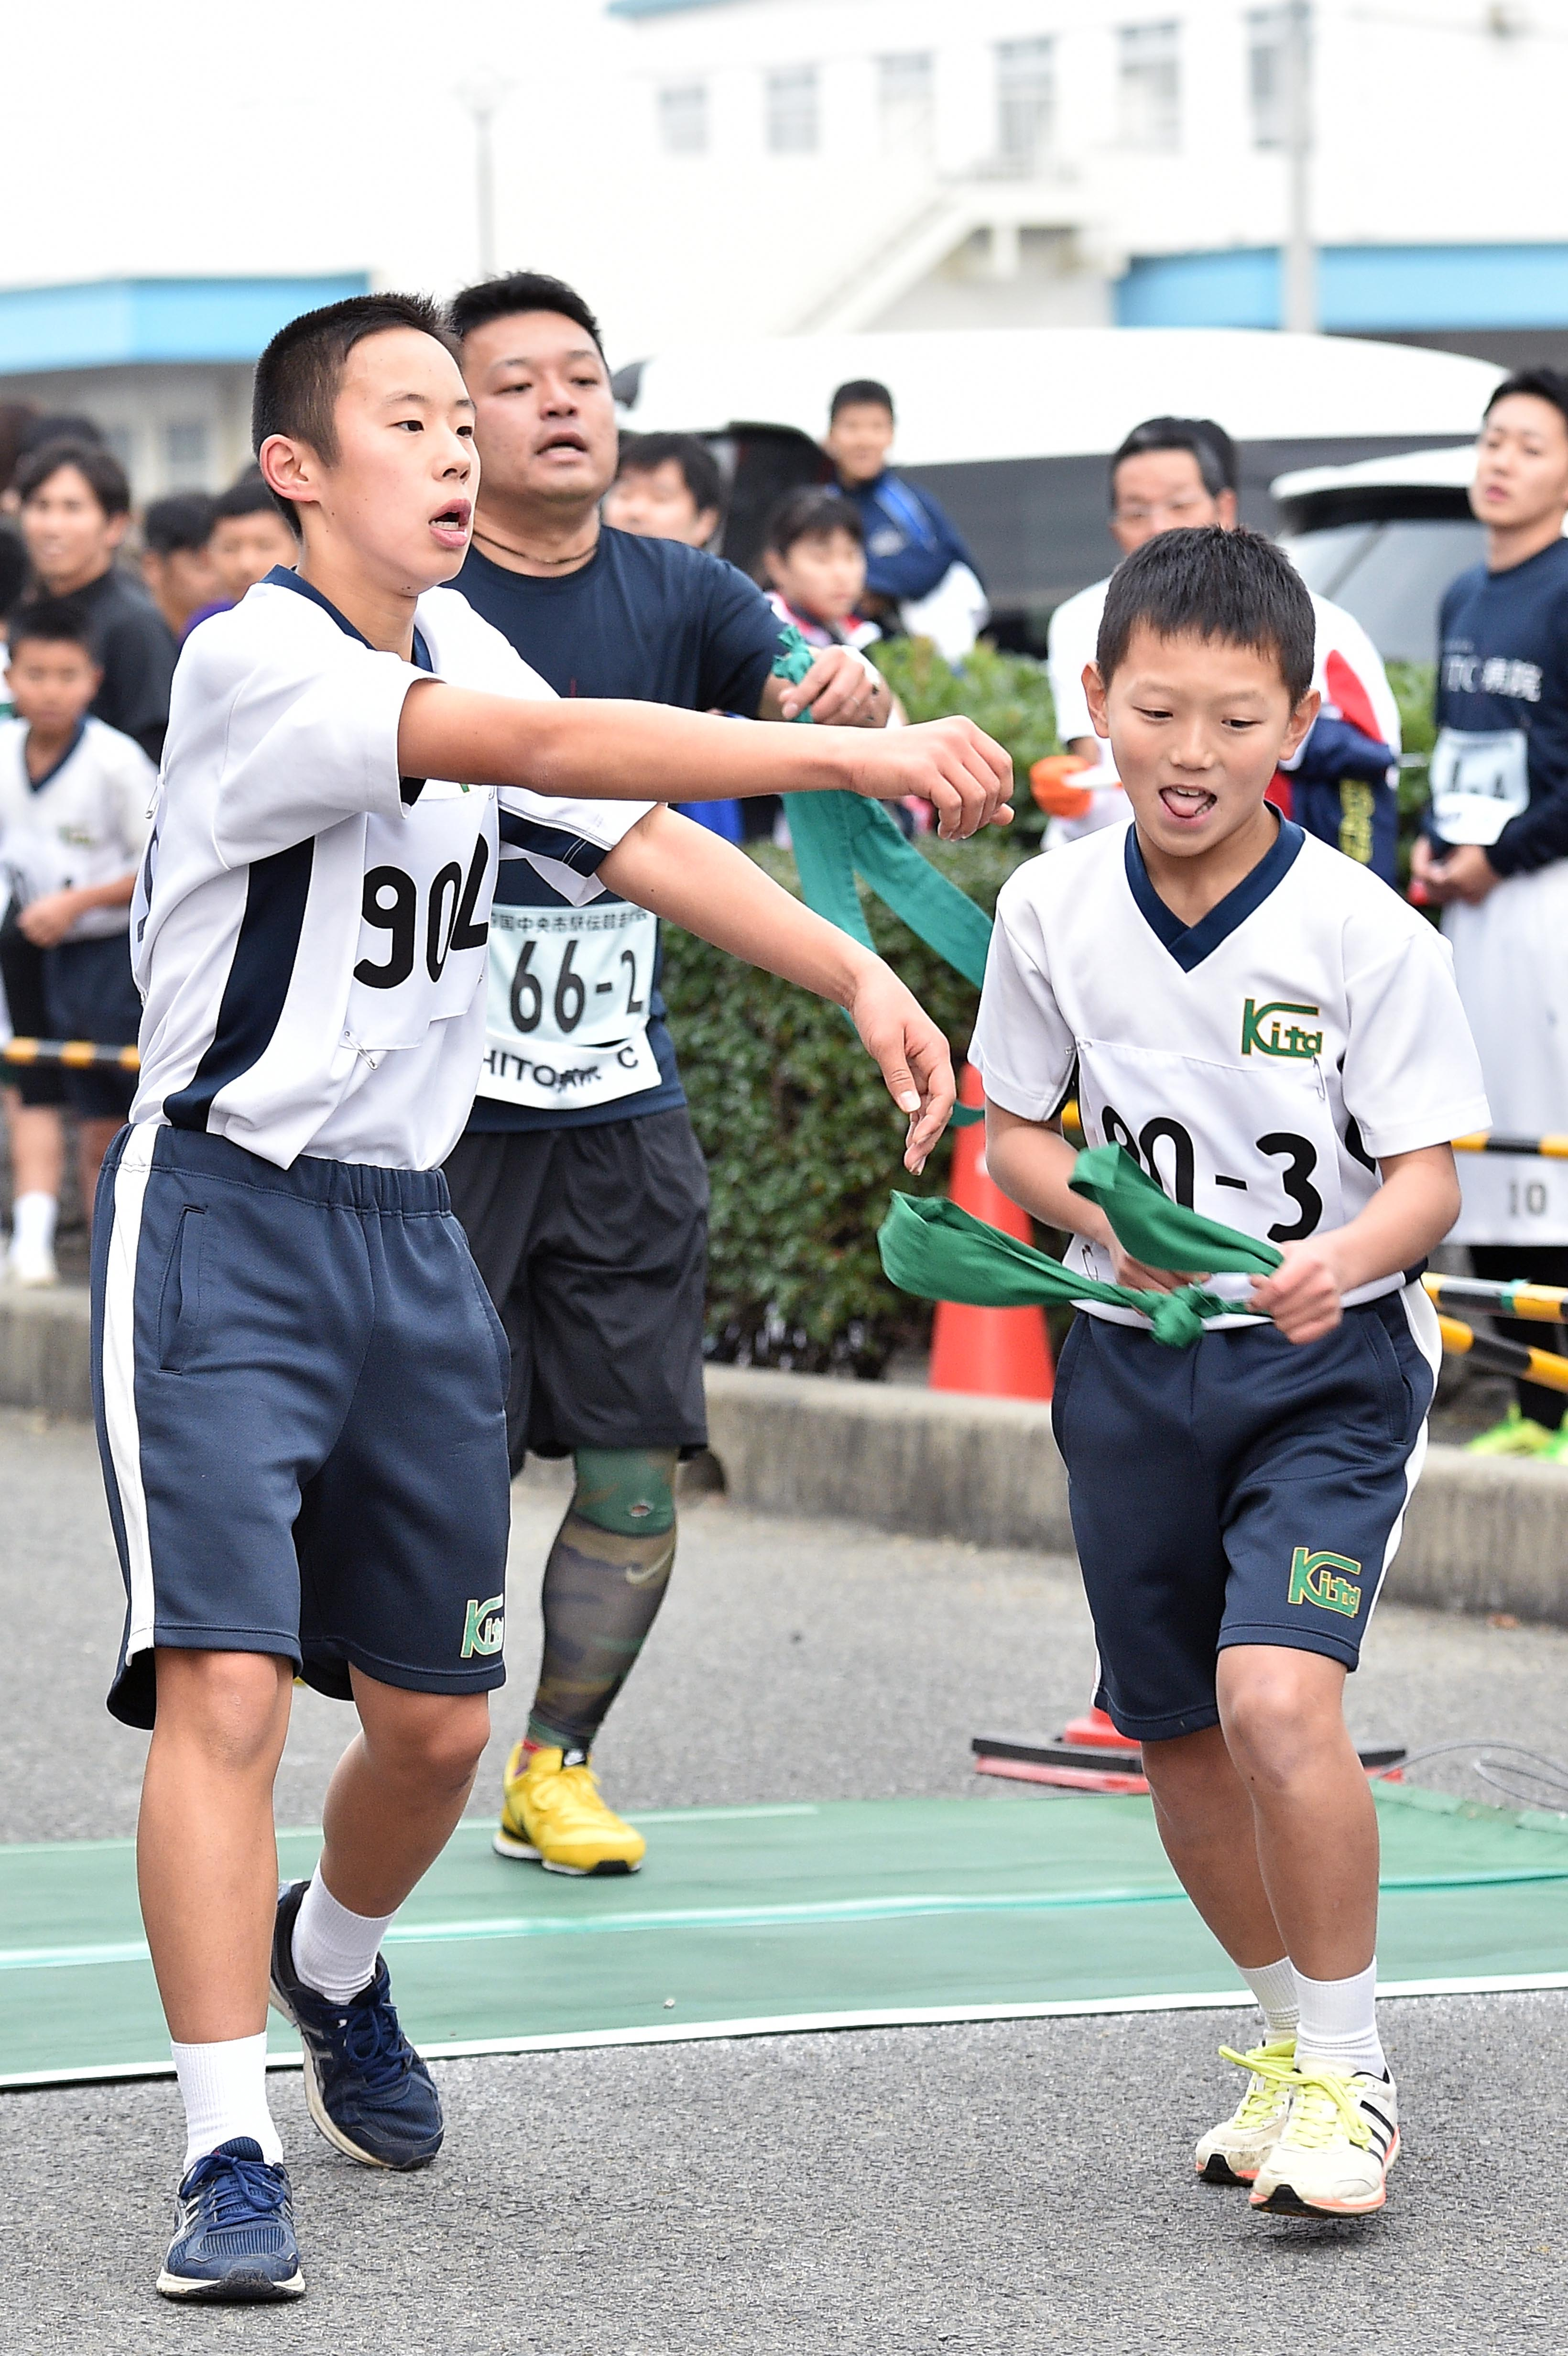 駅伝2016 (48)